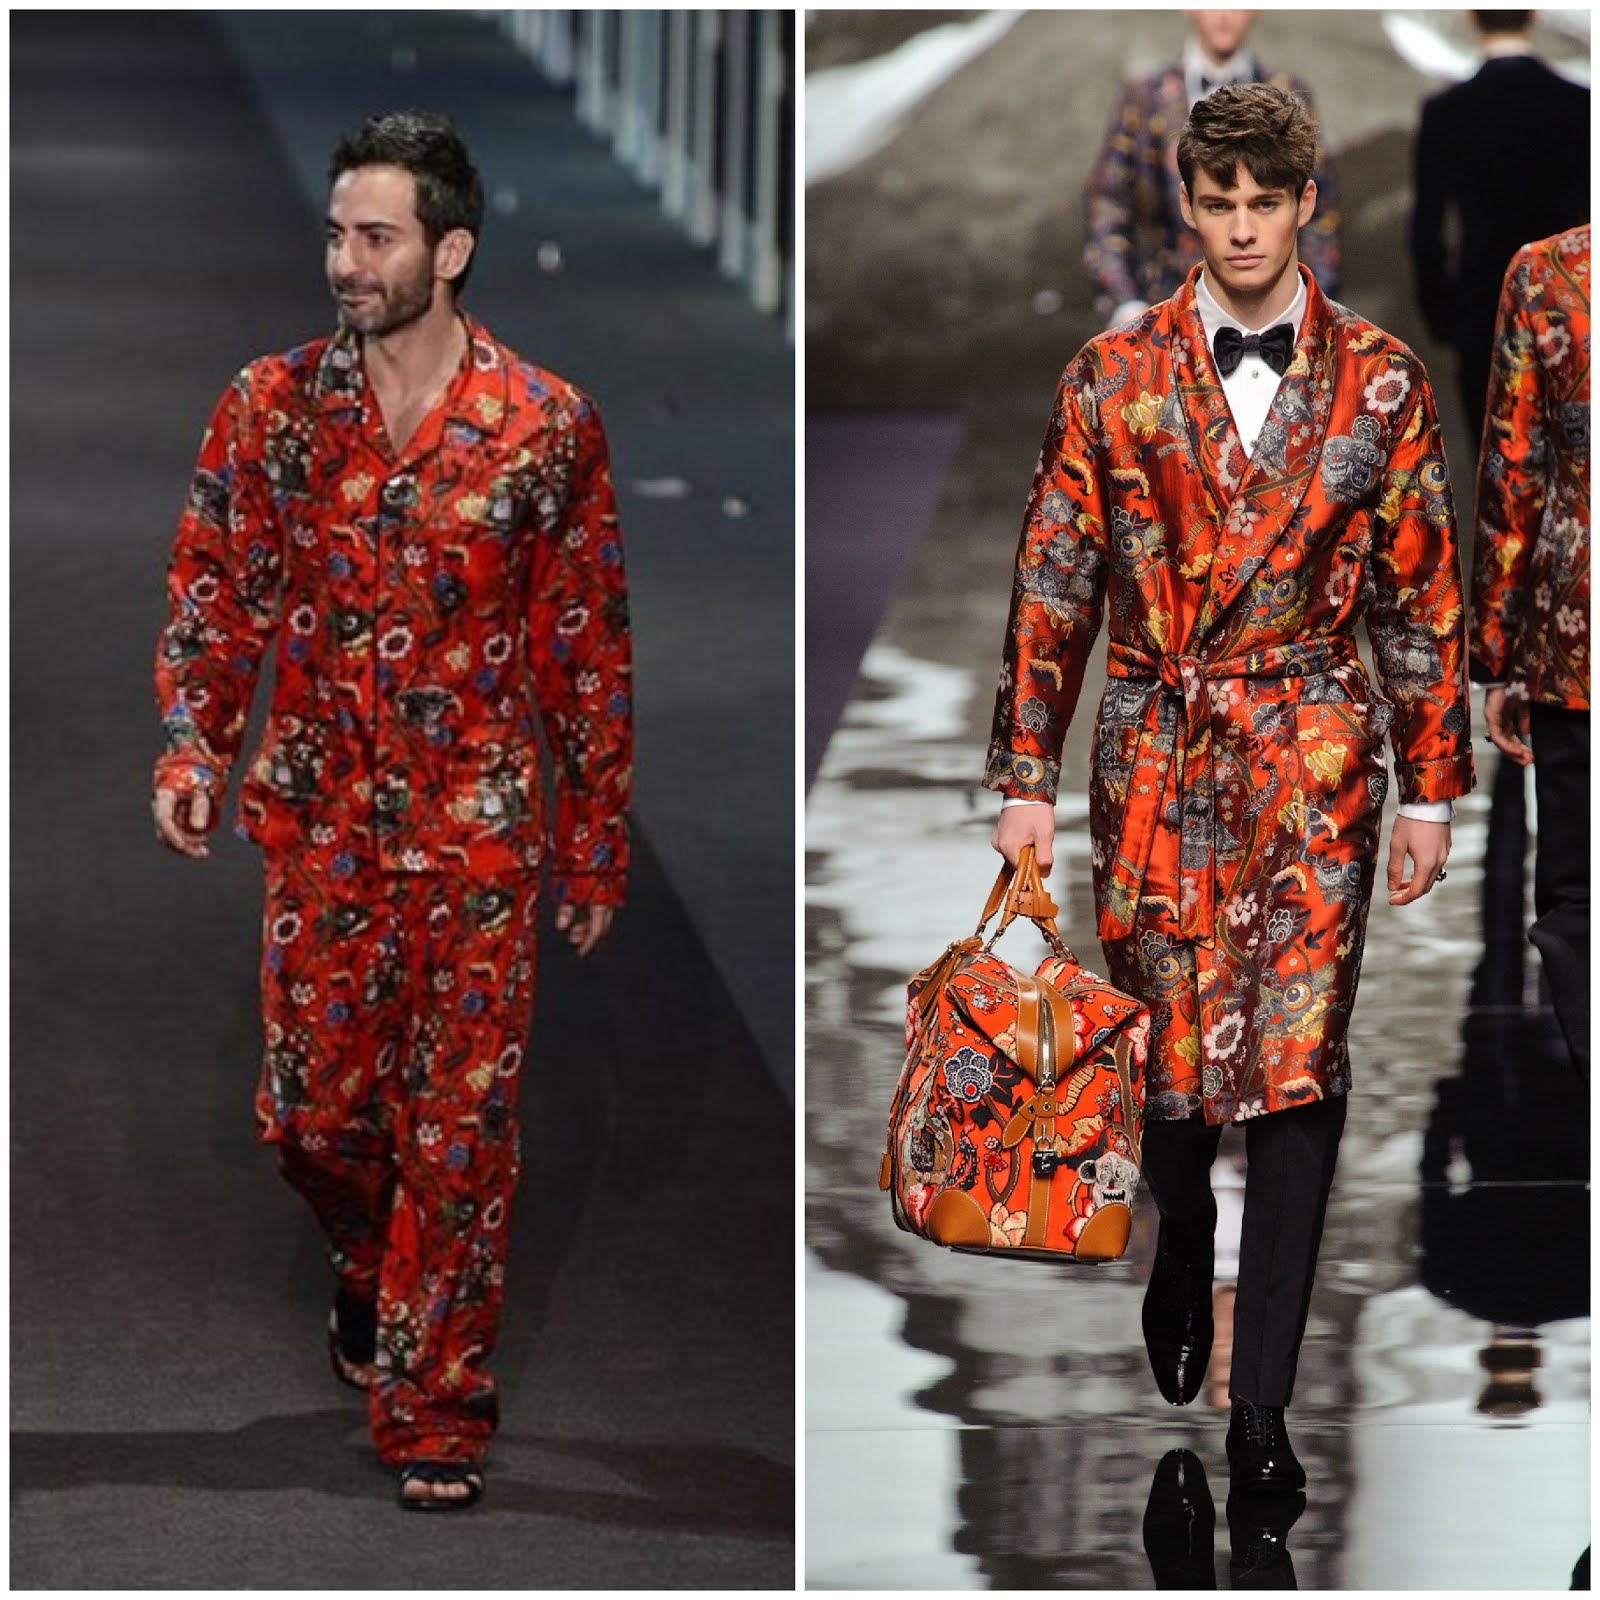 00O00 Menswear Blog Marc Jacobs in Chapman Brothers x Louis Vuitton Menswear Fall Winter 2013 pyjamas at Louis Vuitton Womenswear Fall Winter 2013 show during Paris Fashion Week 6th March 2013